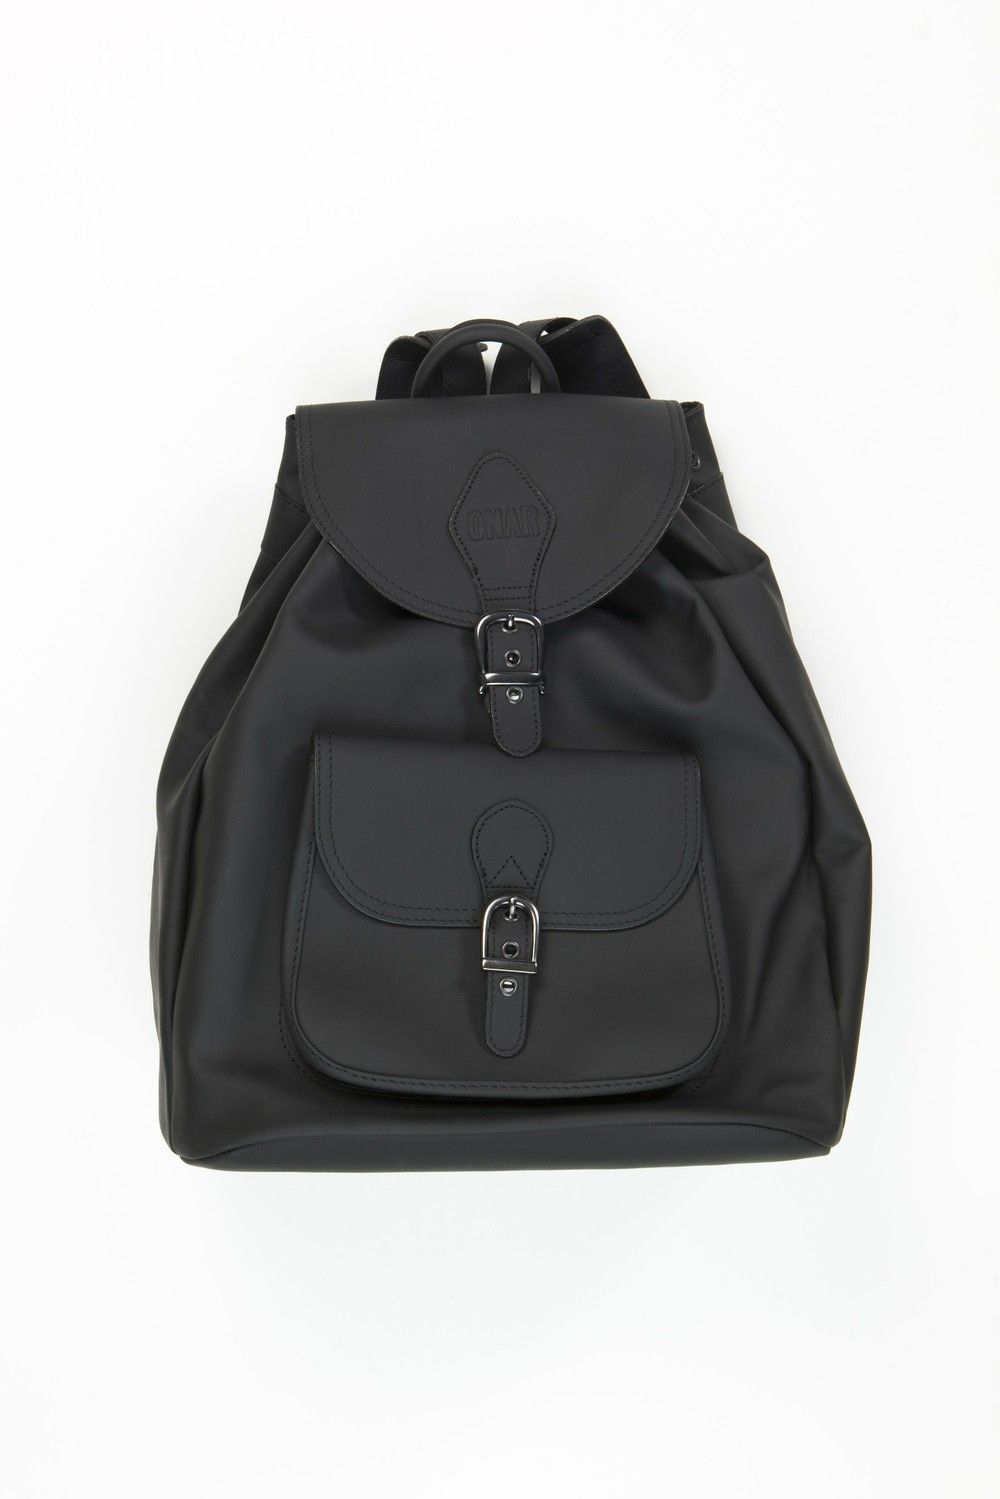 ONAR Stott backpack coal black via ONAR Studios. Click on the image to see more!